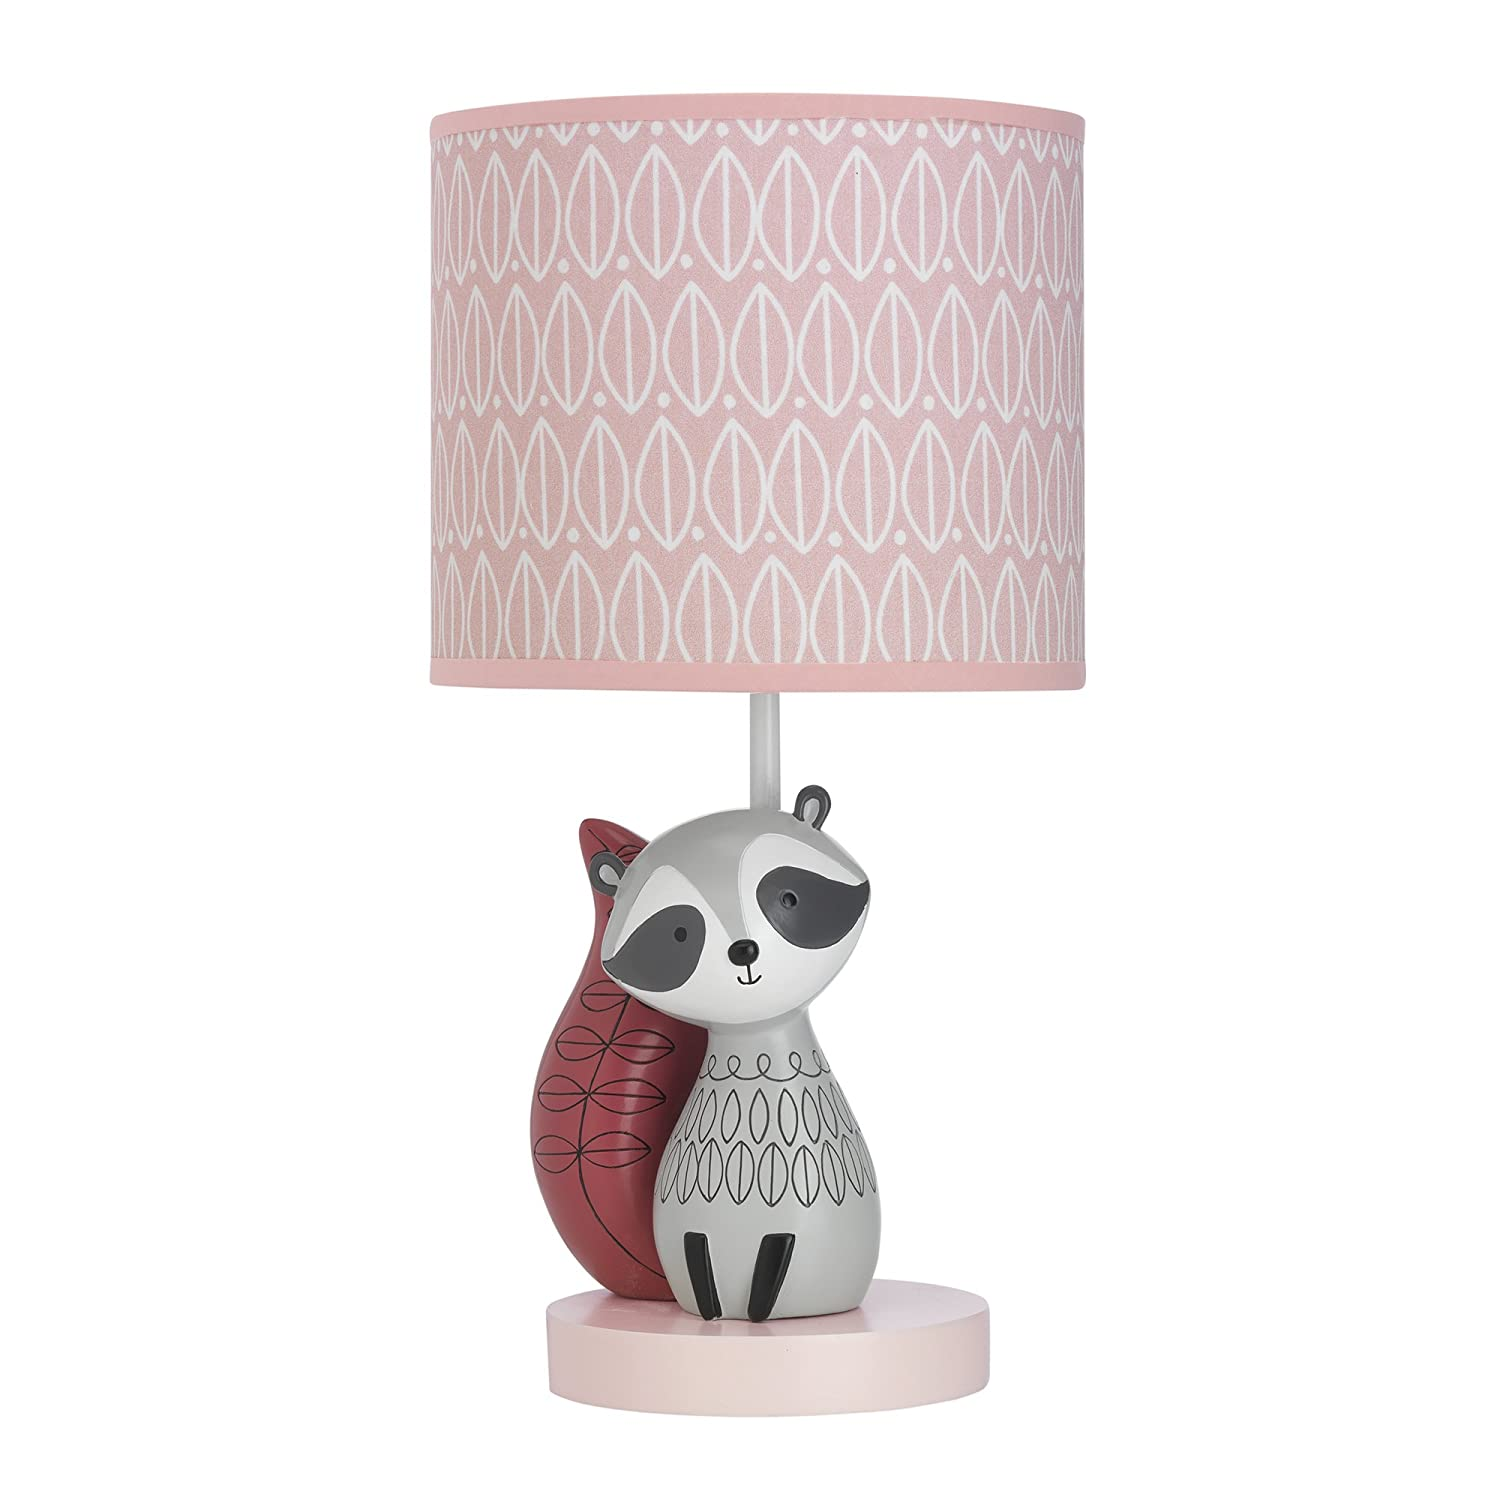 Lambs & Ivy Little Woodland Raccoon Lamp with Shade & Bulb, Pink/White 698024B